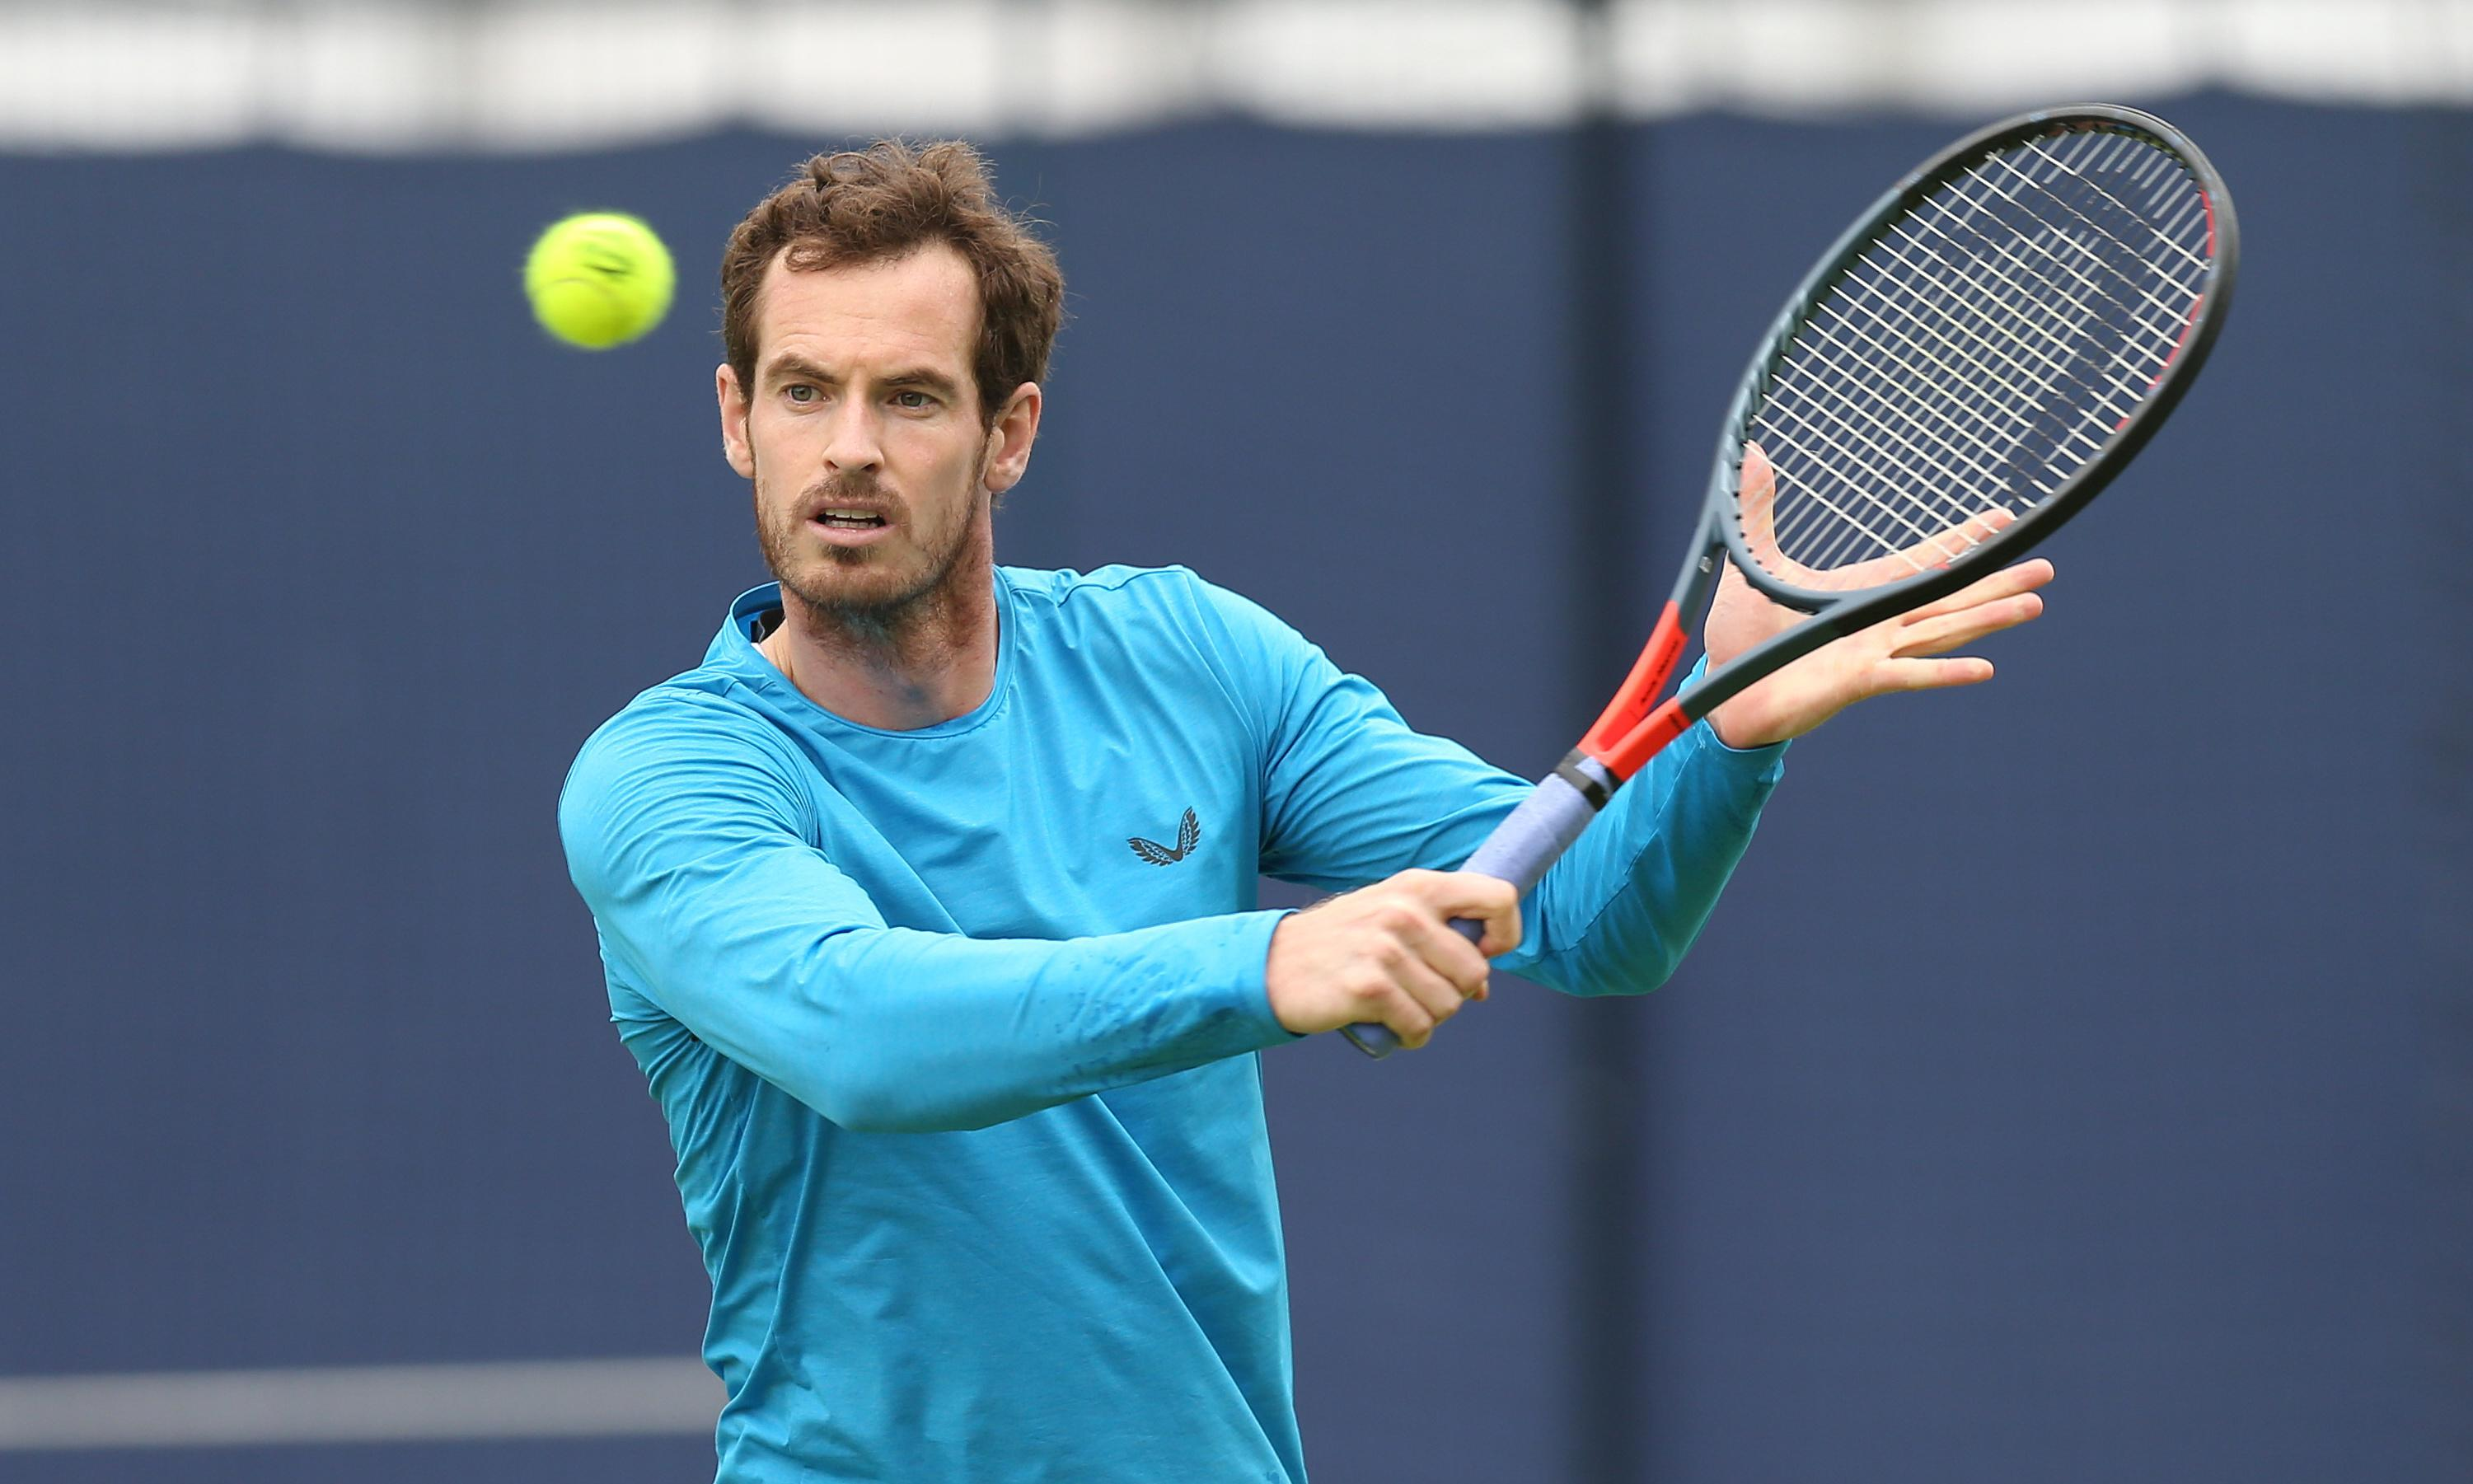 Andy Murray hopes to play singles this year but sets no timescale for return